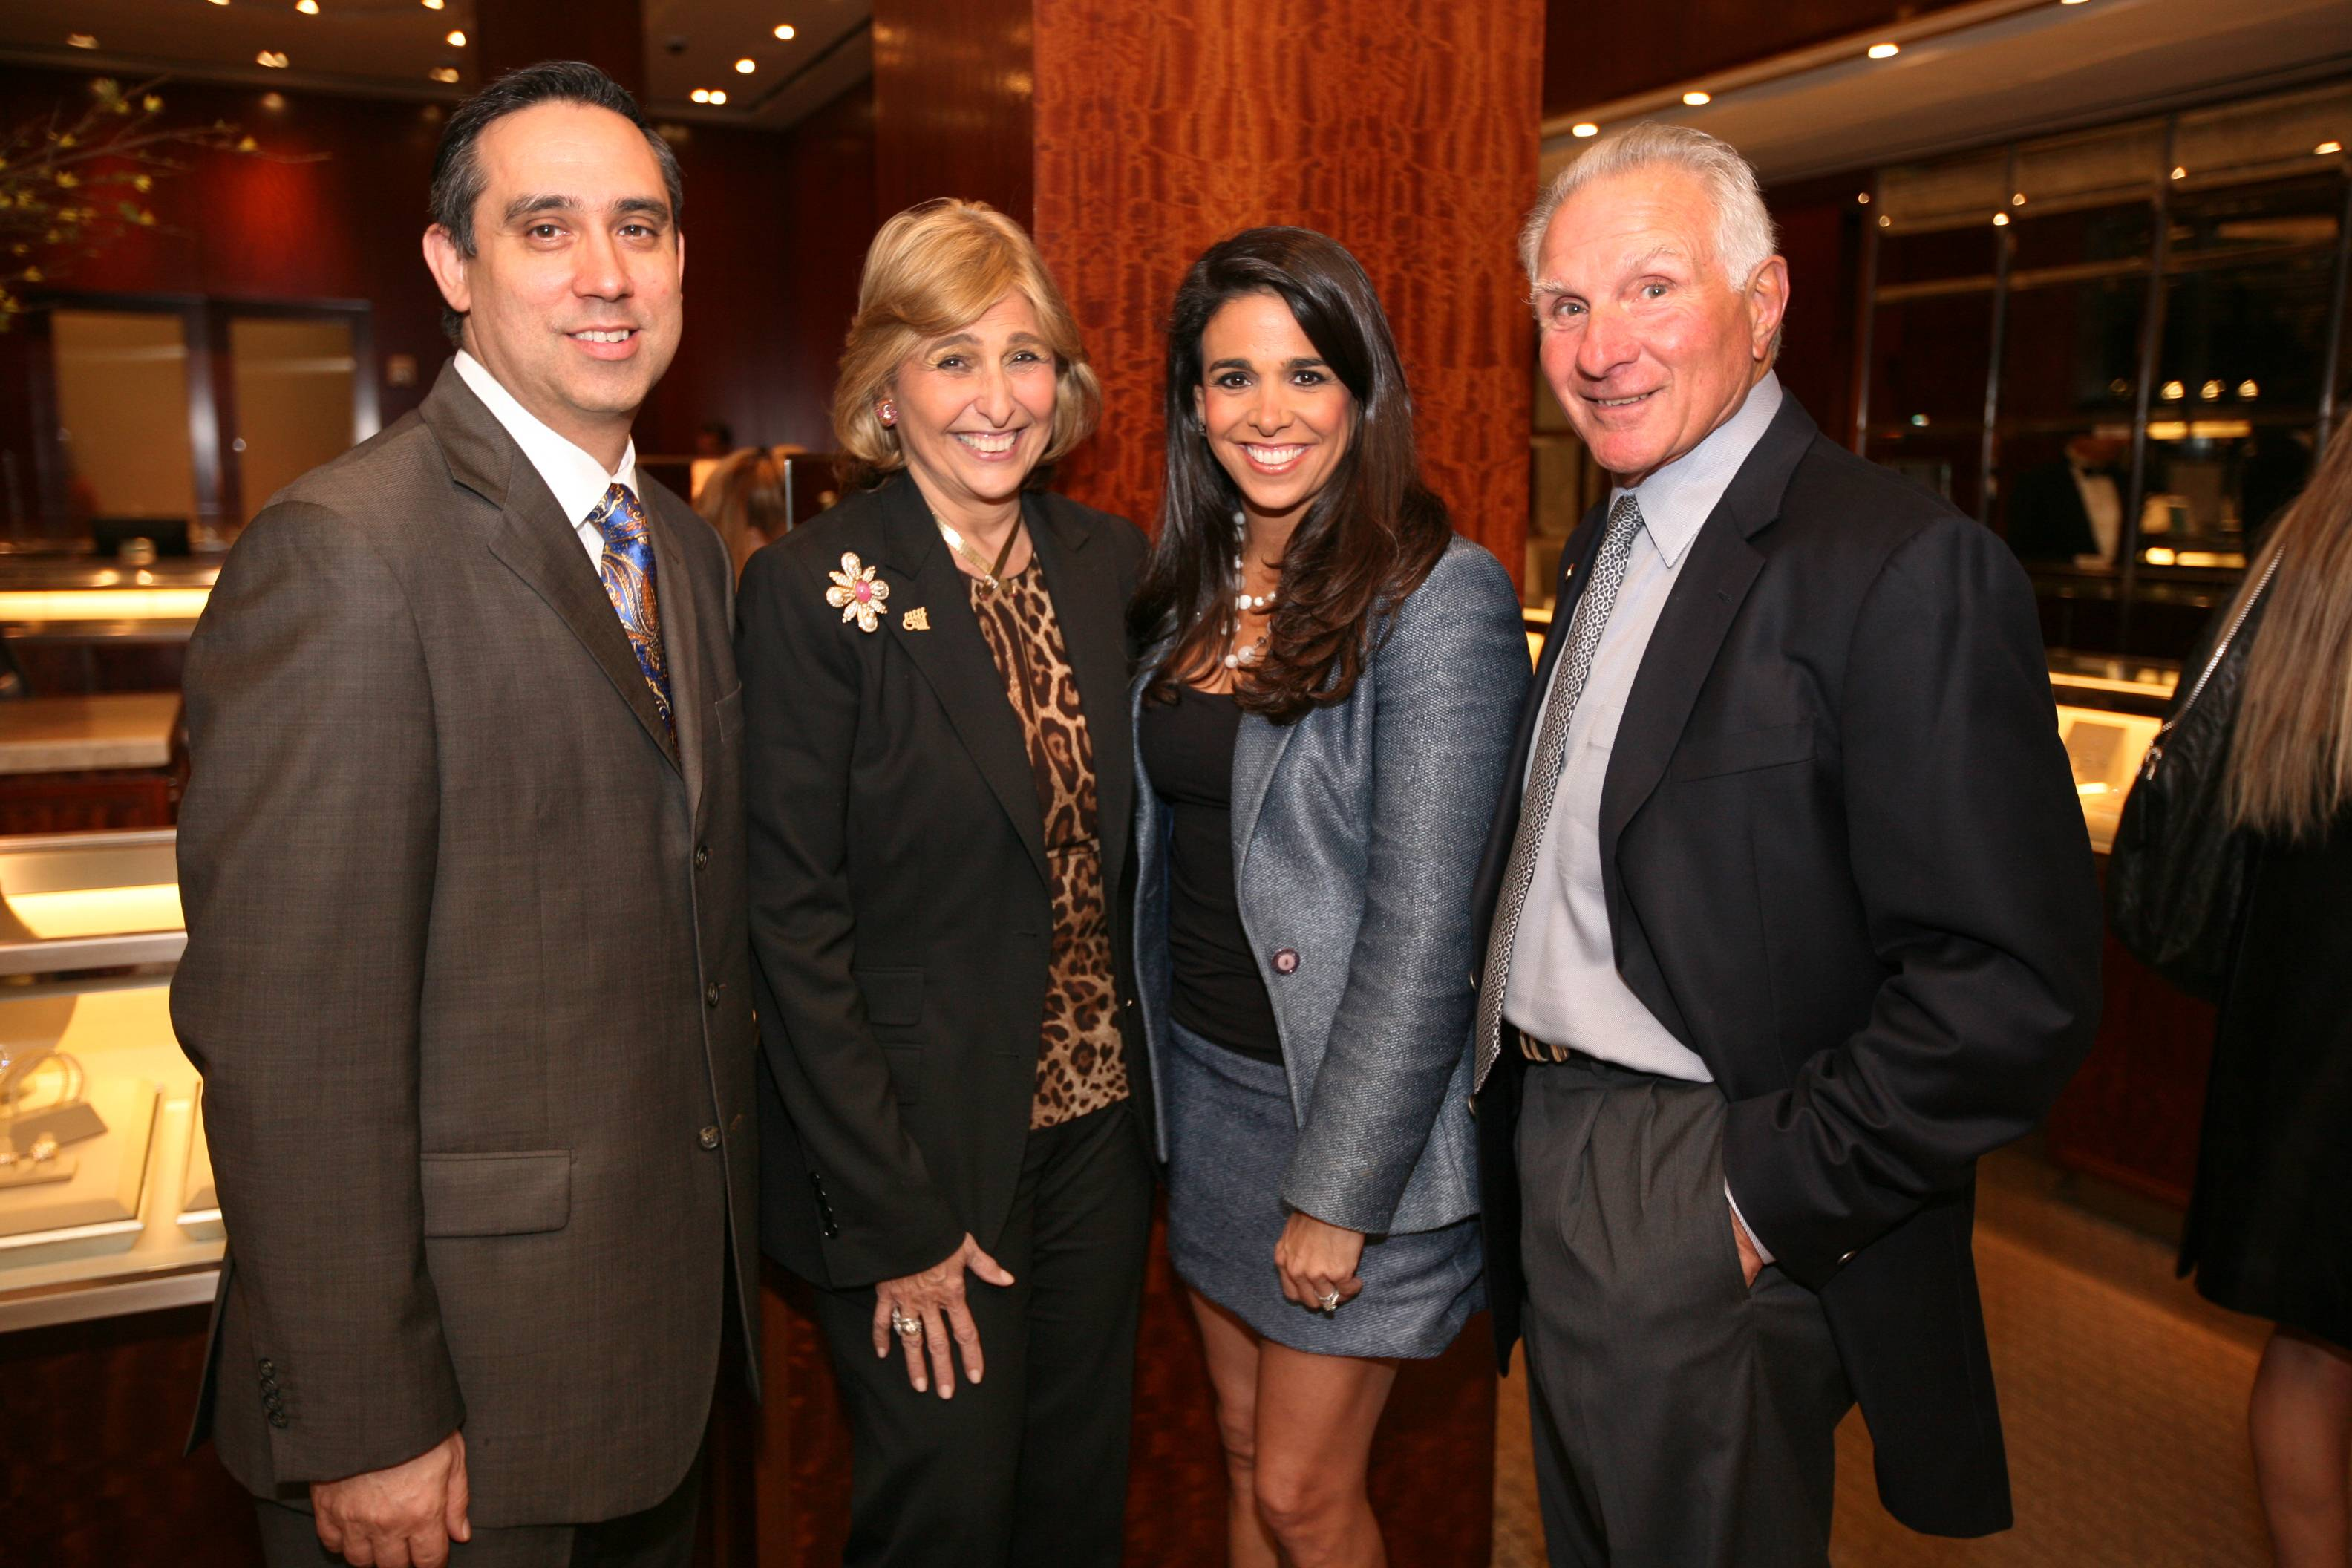 Tiffany & Co. Group Director Henry Gonzalez, Suzie Sayfie,Stephanie Sayfie-Aagaard, & Nick Buoniconti1